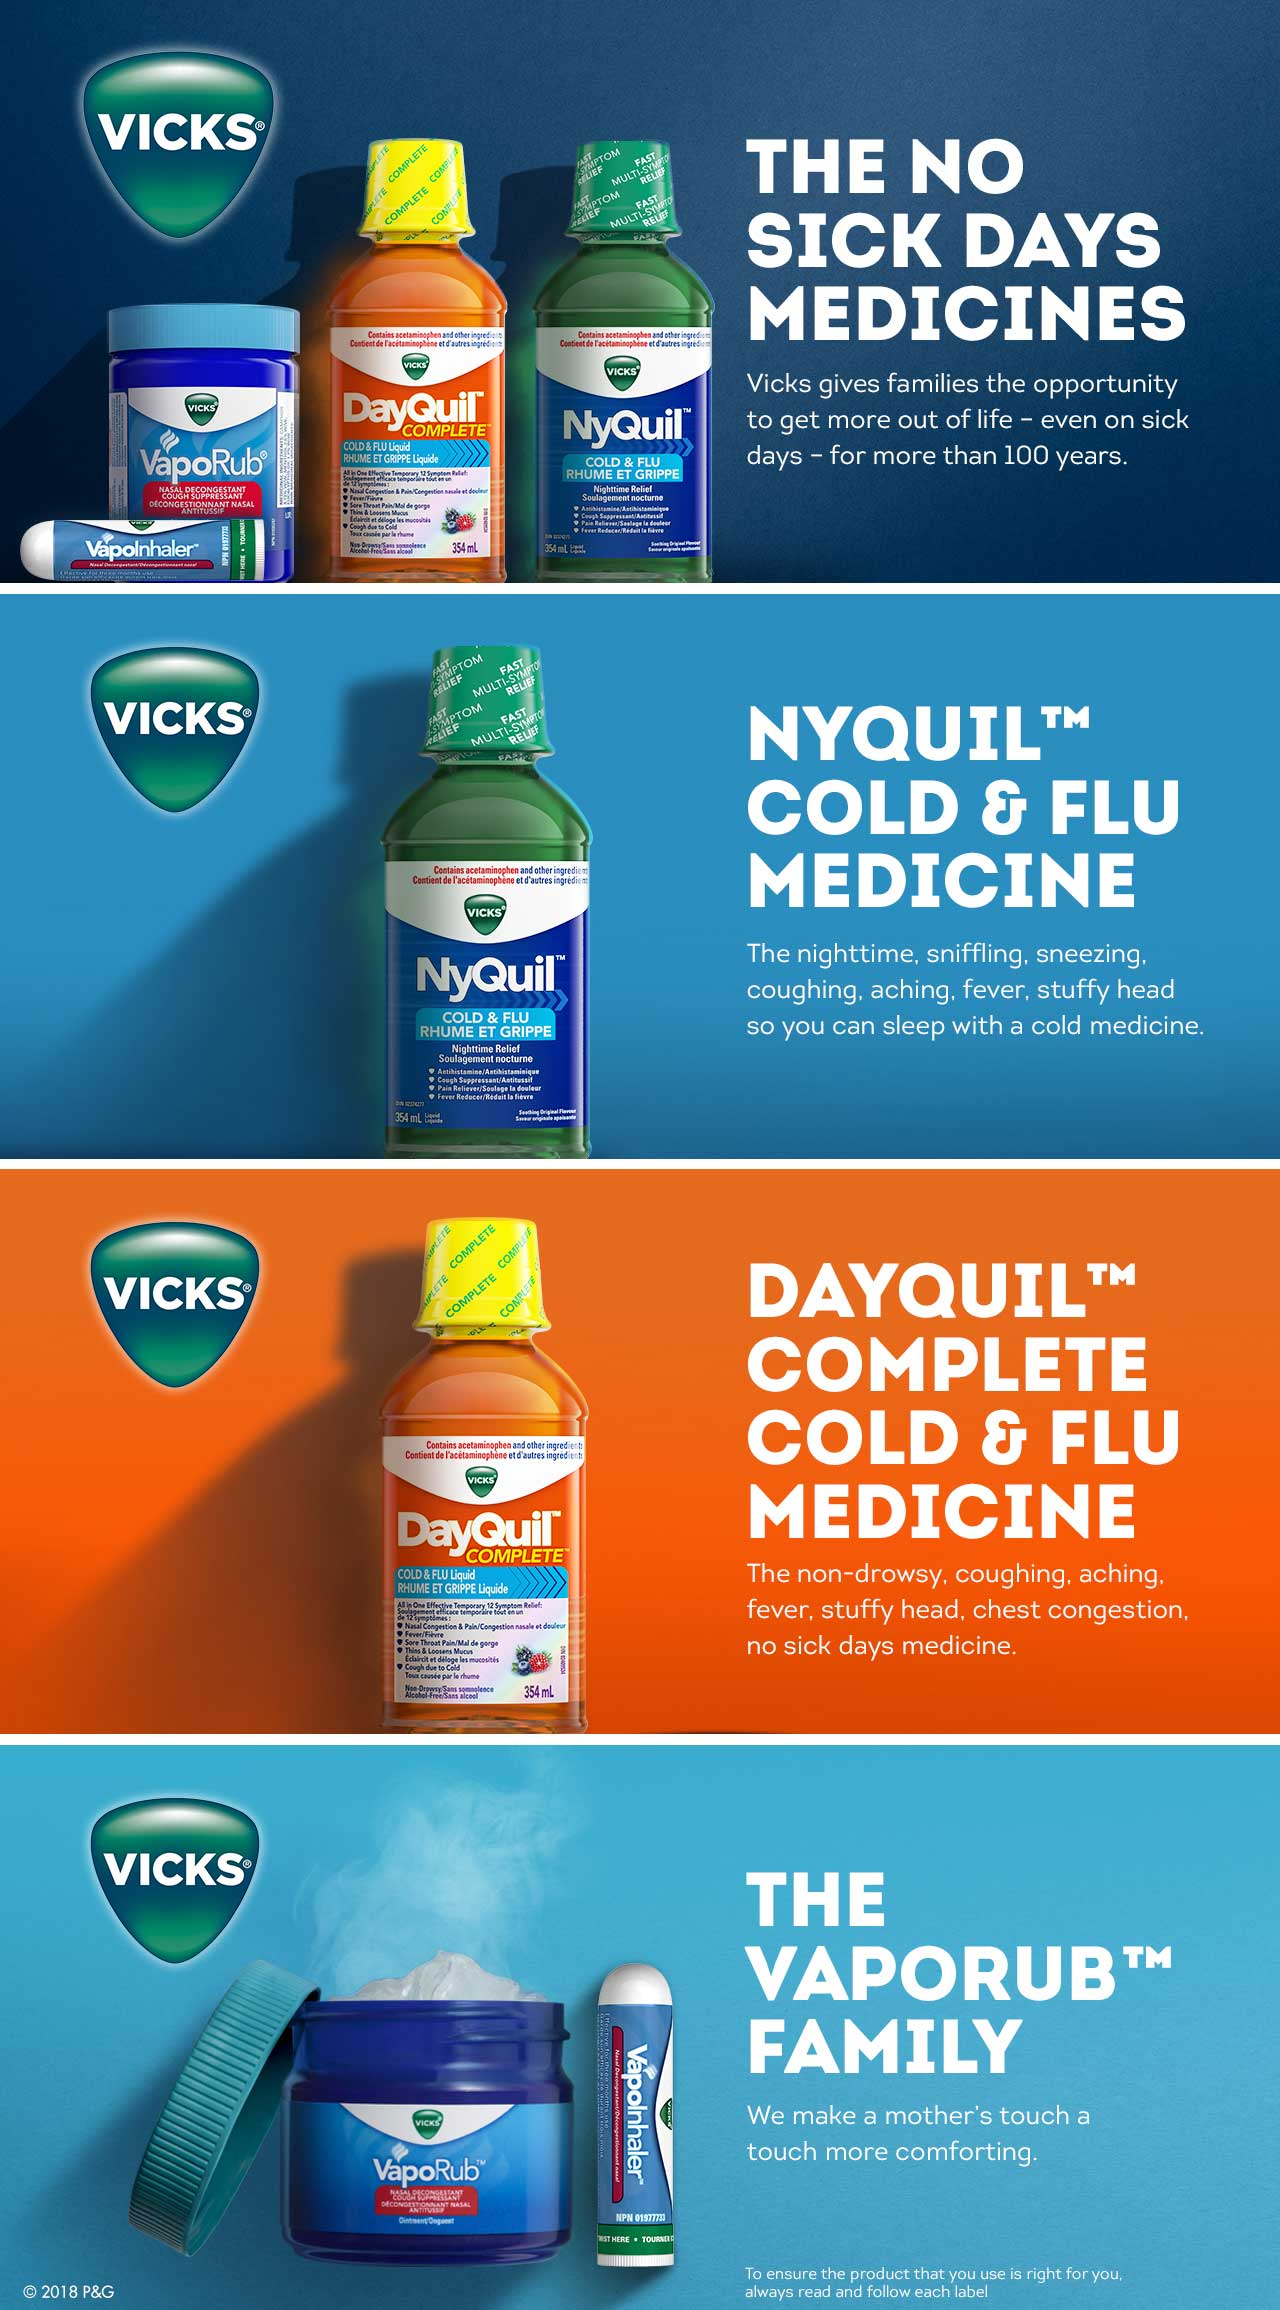 Get 1,500 bonus points* when you buy any participating Vicks® product.